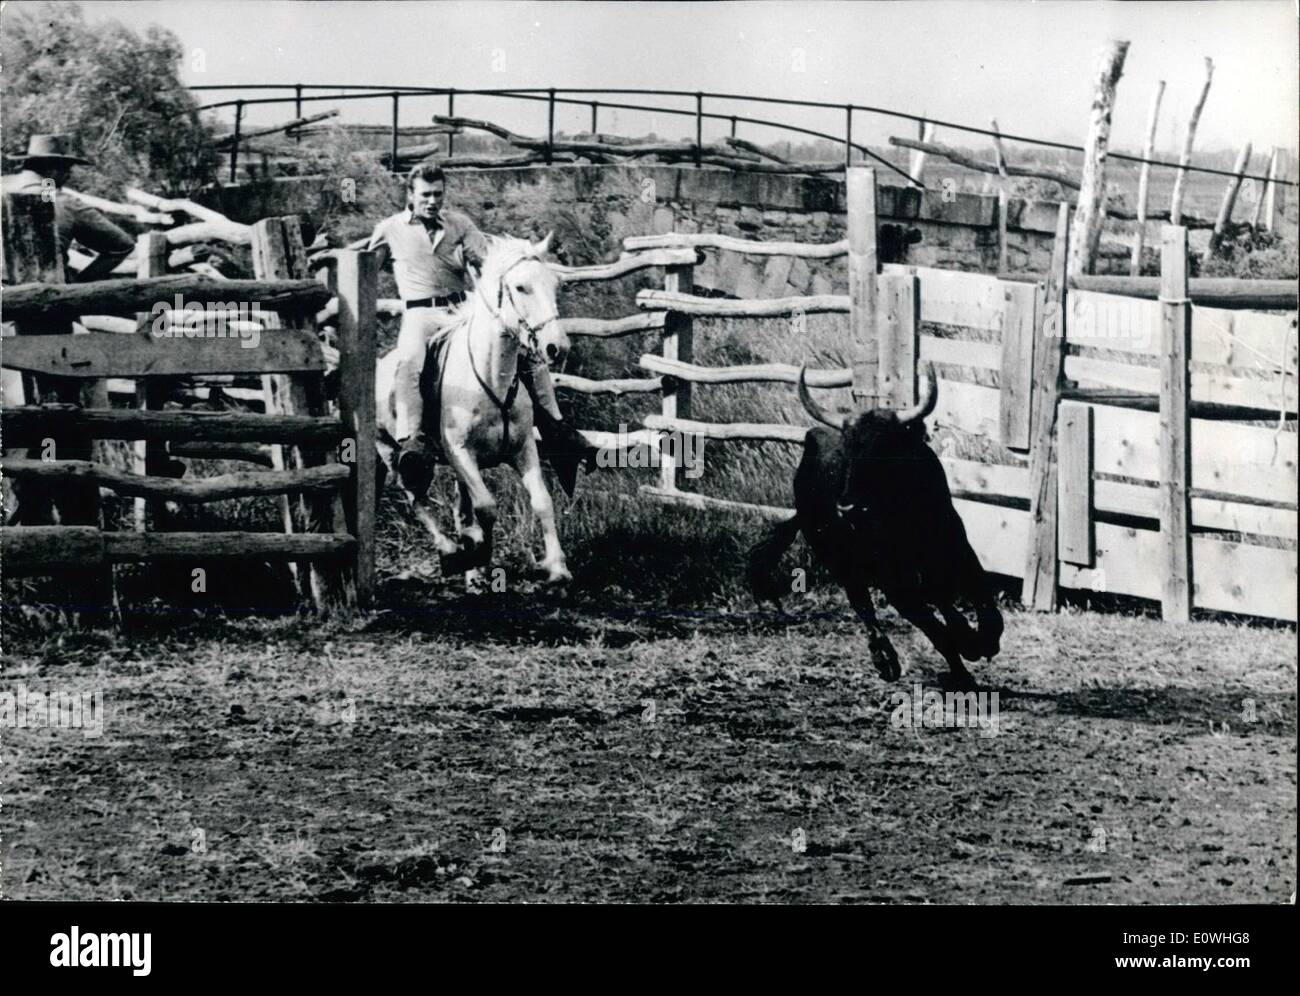 Feb. 02, 1963 - The ''Gardian'' Johnny Hallyday ... In Cam argue, between the pond of Vaccares and the Pet it-Rhone France's number one twister is shooting his first picture a ''Western'' under the direction of Noel Howard with the title : ''D'ou viens-tu Johnny ?'' The Story of a twist-singer falling in the hands of some dangerous gangsters.. Photo Shows Gordian costumed Johnny Hallyday pursues a bull. - Stock Image